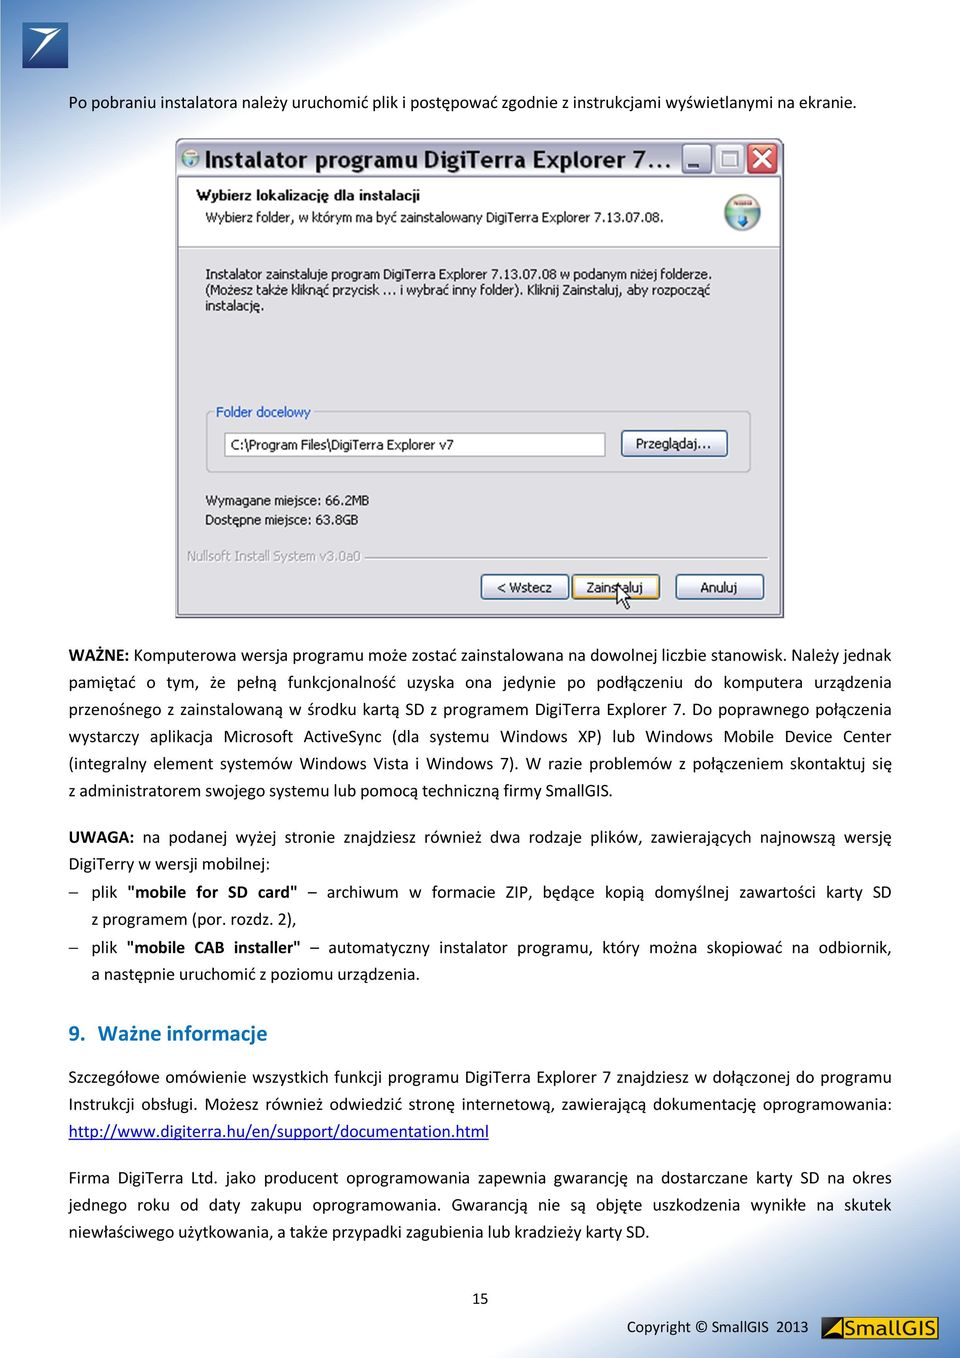 Do poprawnego połączenia wystarczy aplikacja Microsoft ActiveSync (dla systemu Windows XP) lub Windows Mobile Device Center (integralny element systemów Windows Vista i Windows 7).